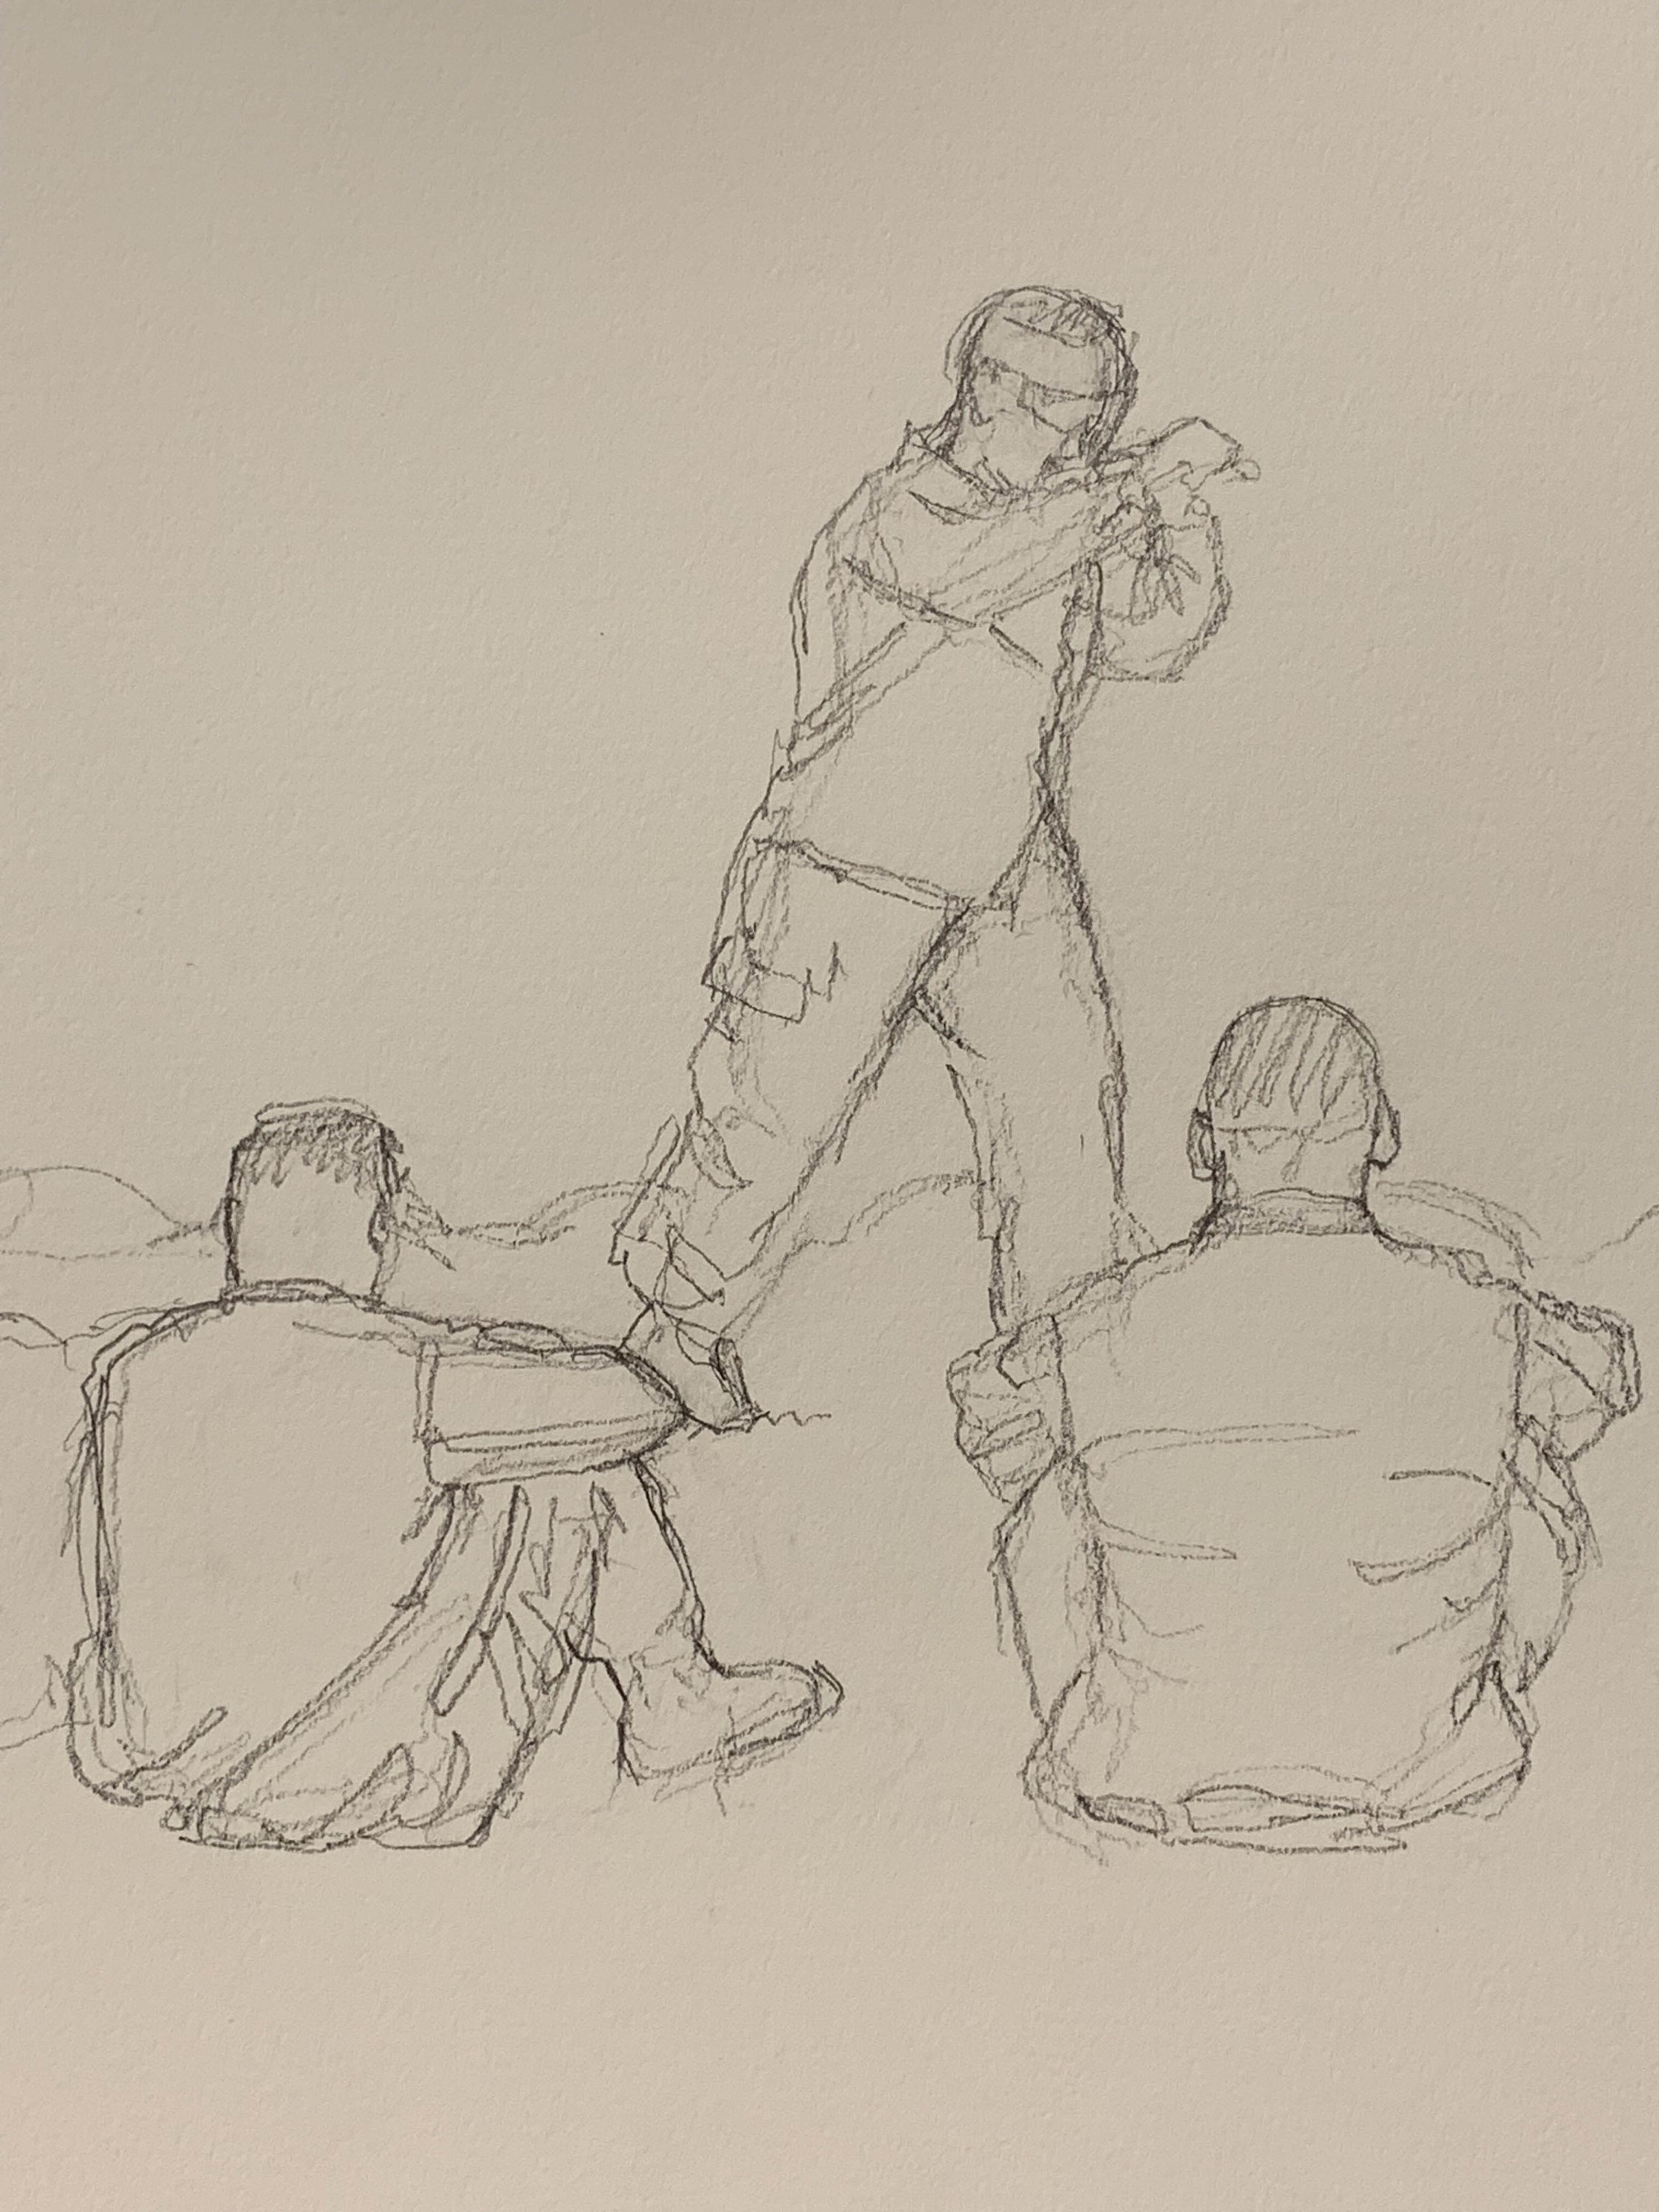 MCMAP Tan Belt Hand to Hand Combat Training with instruction by Sergeant Gouveia.